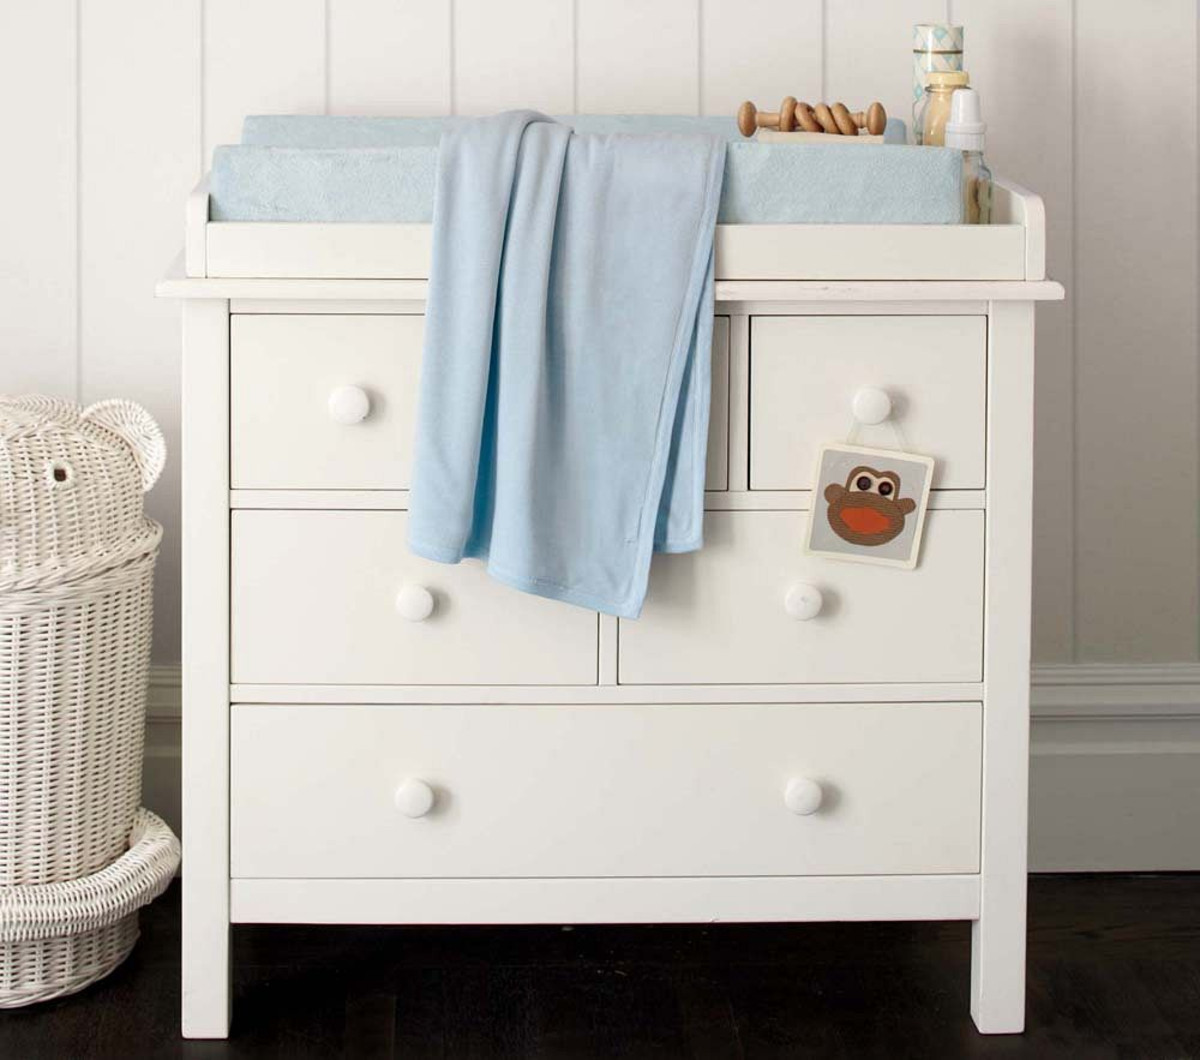 Changing Table Babies Bedroom